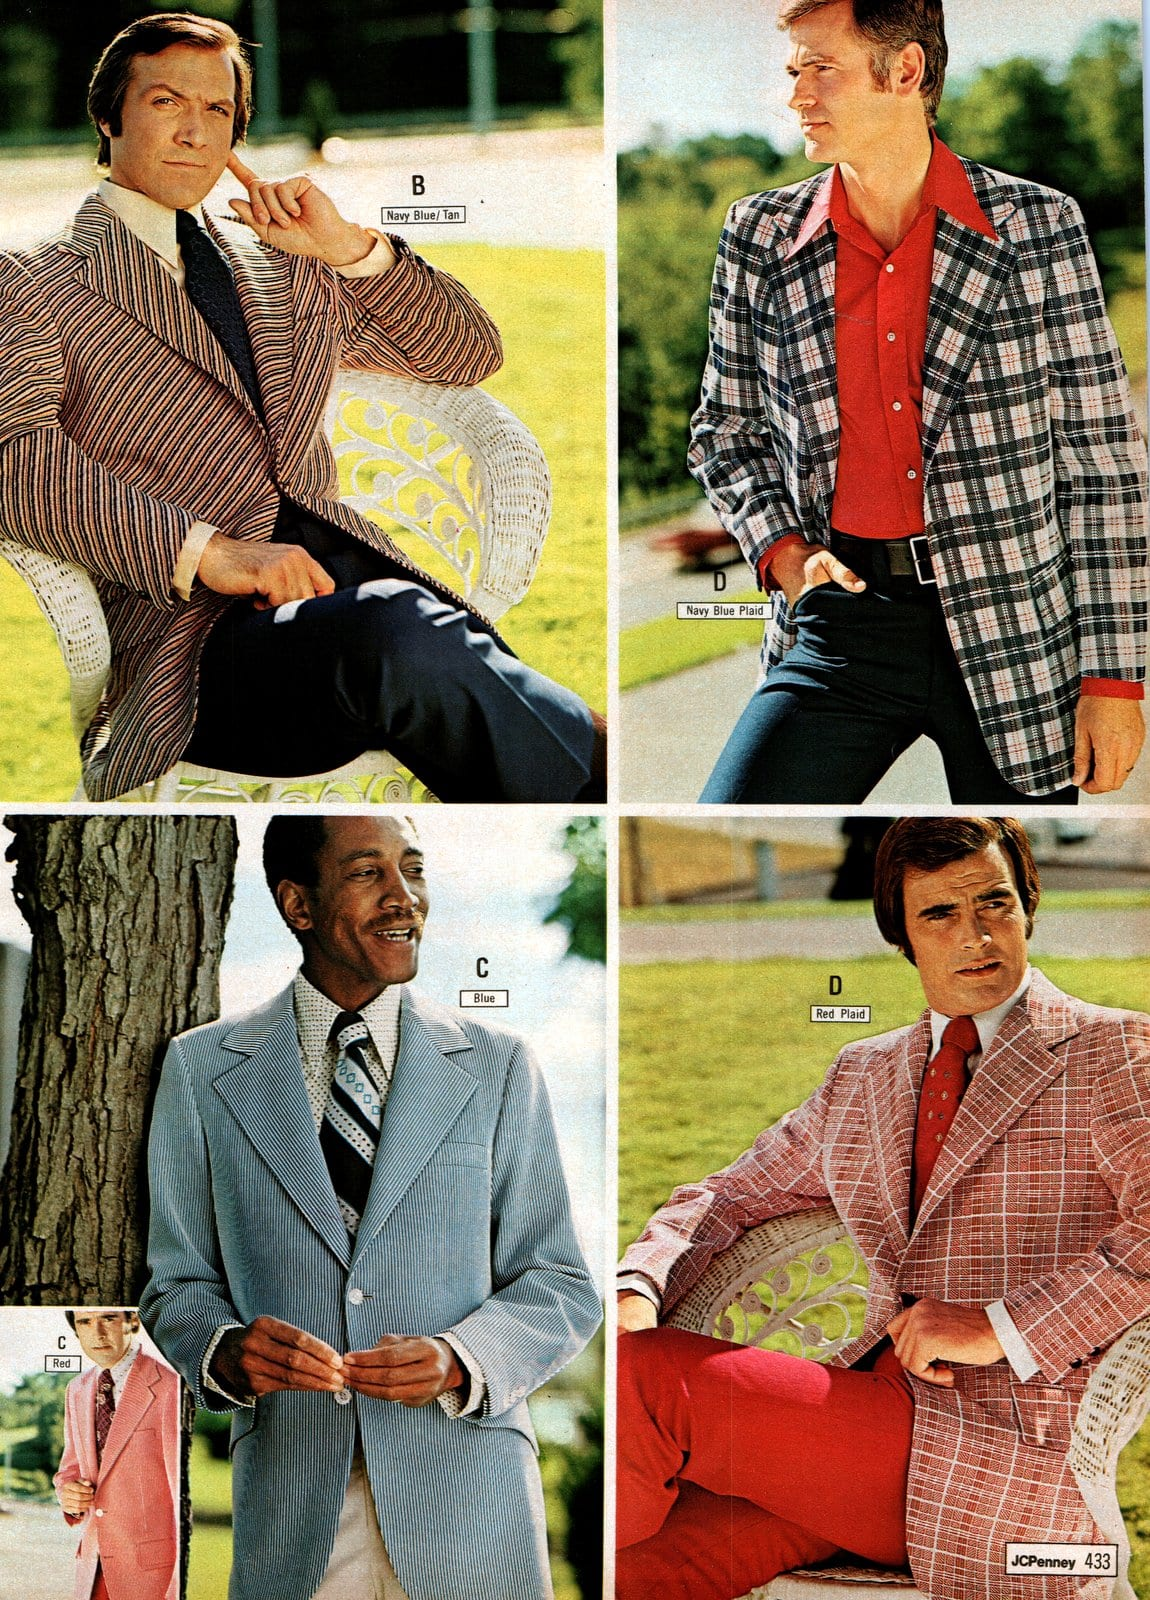 Suits for men from JC Penney in 1973 (1)